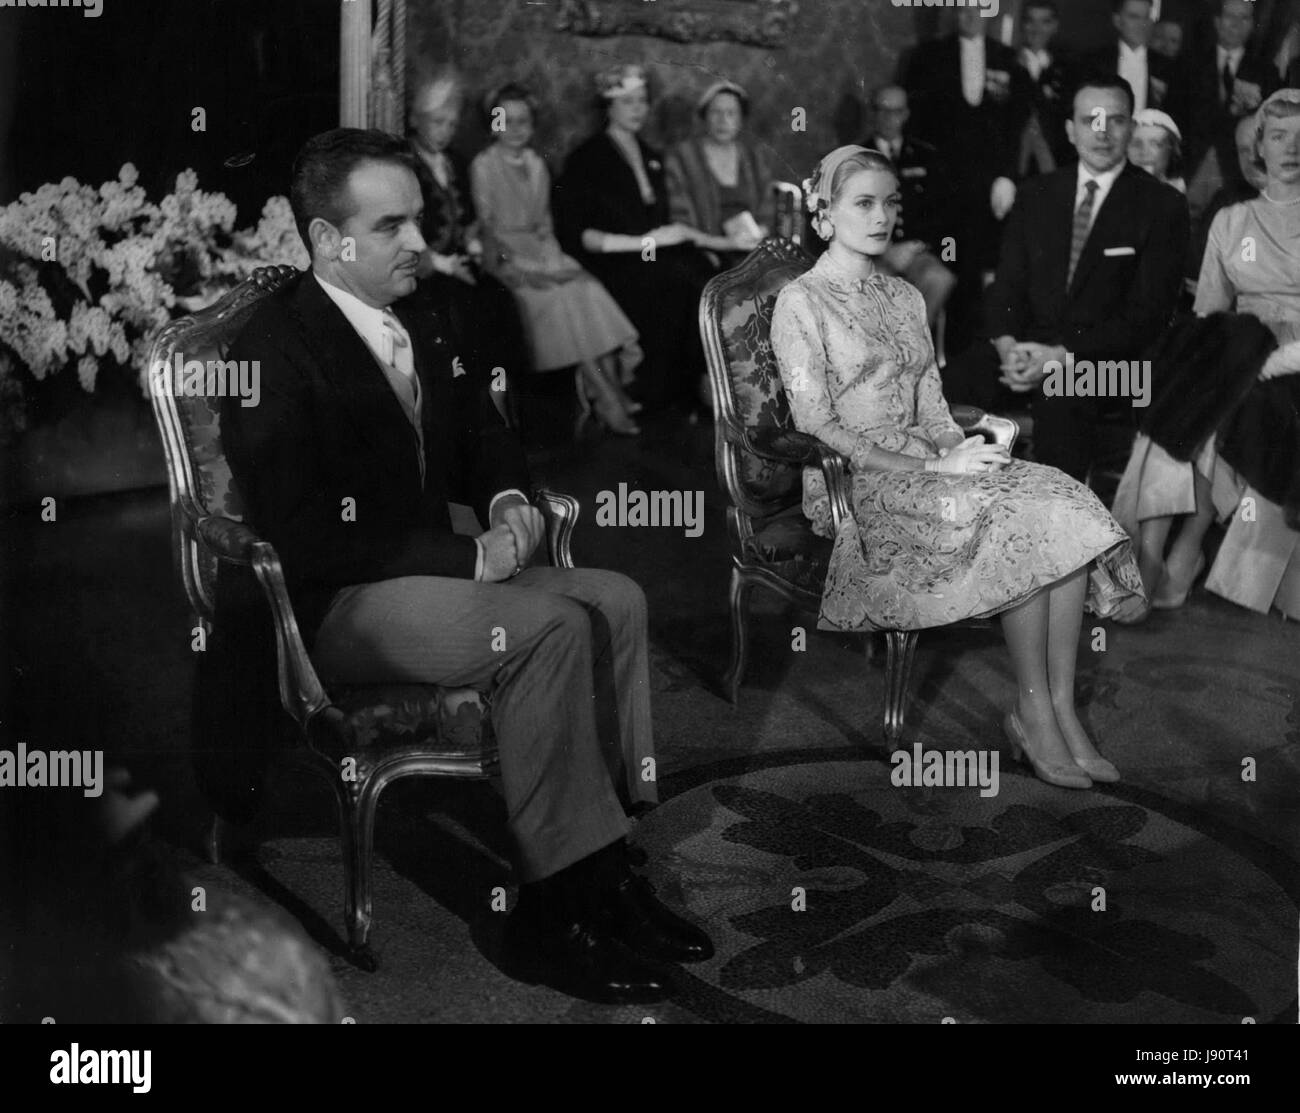 Apr. 04, 1956 - Grace Kelly marries prince Rainier Civil Ceramony at the Royal Palace. Photo shows The scene inside - Stock Image